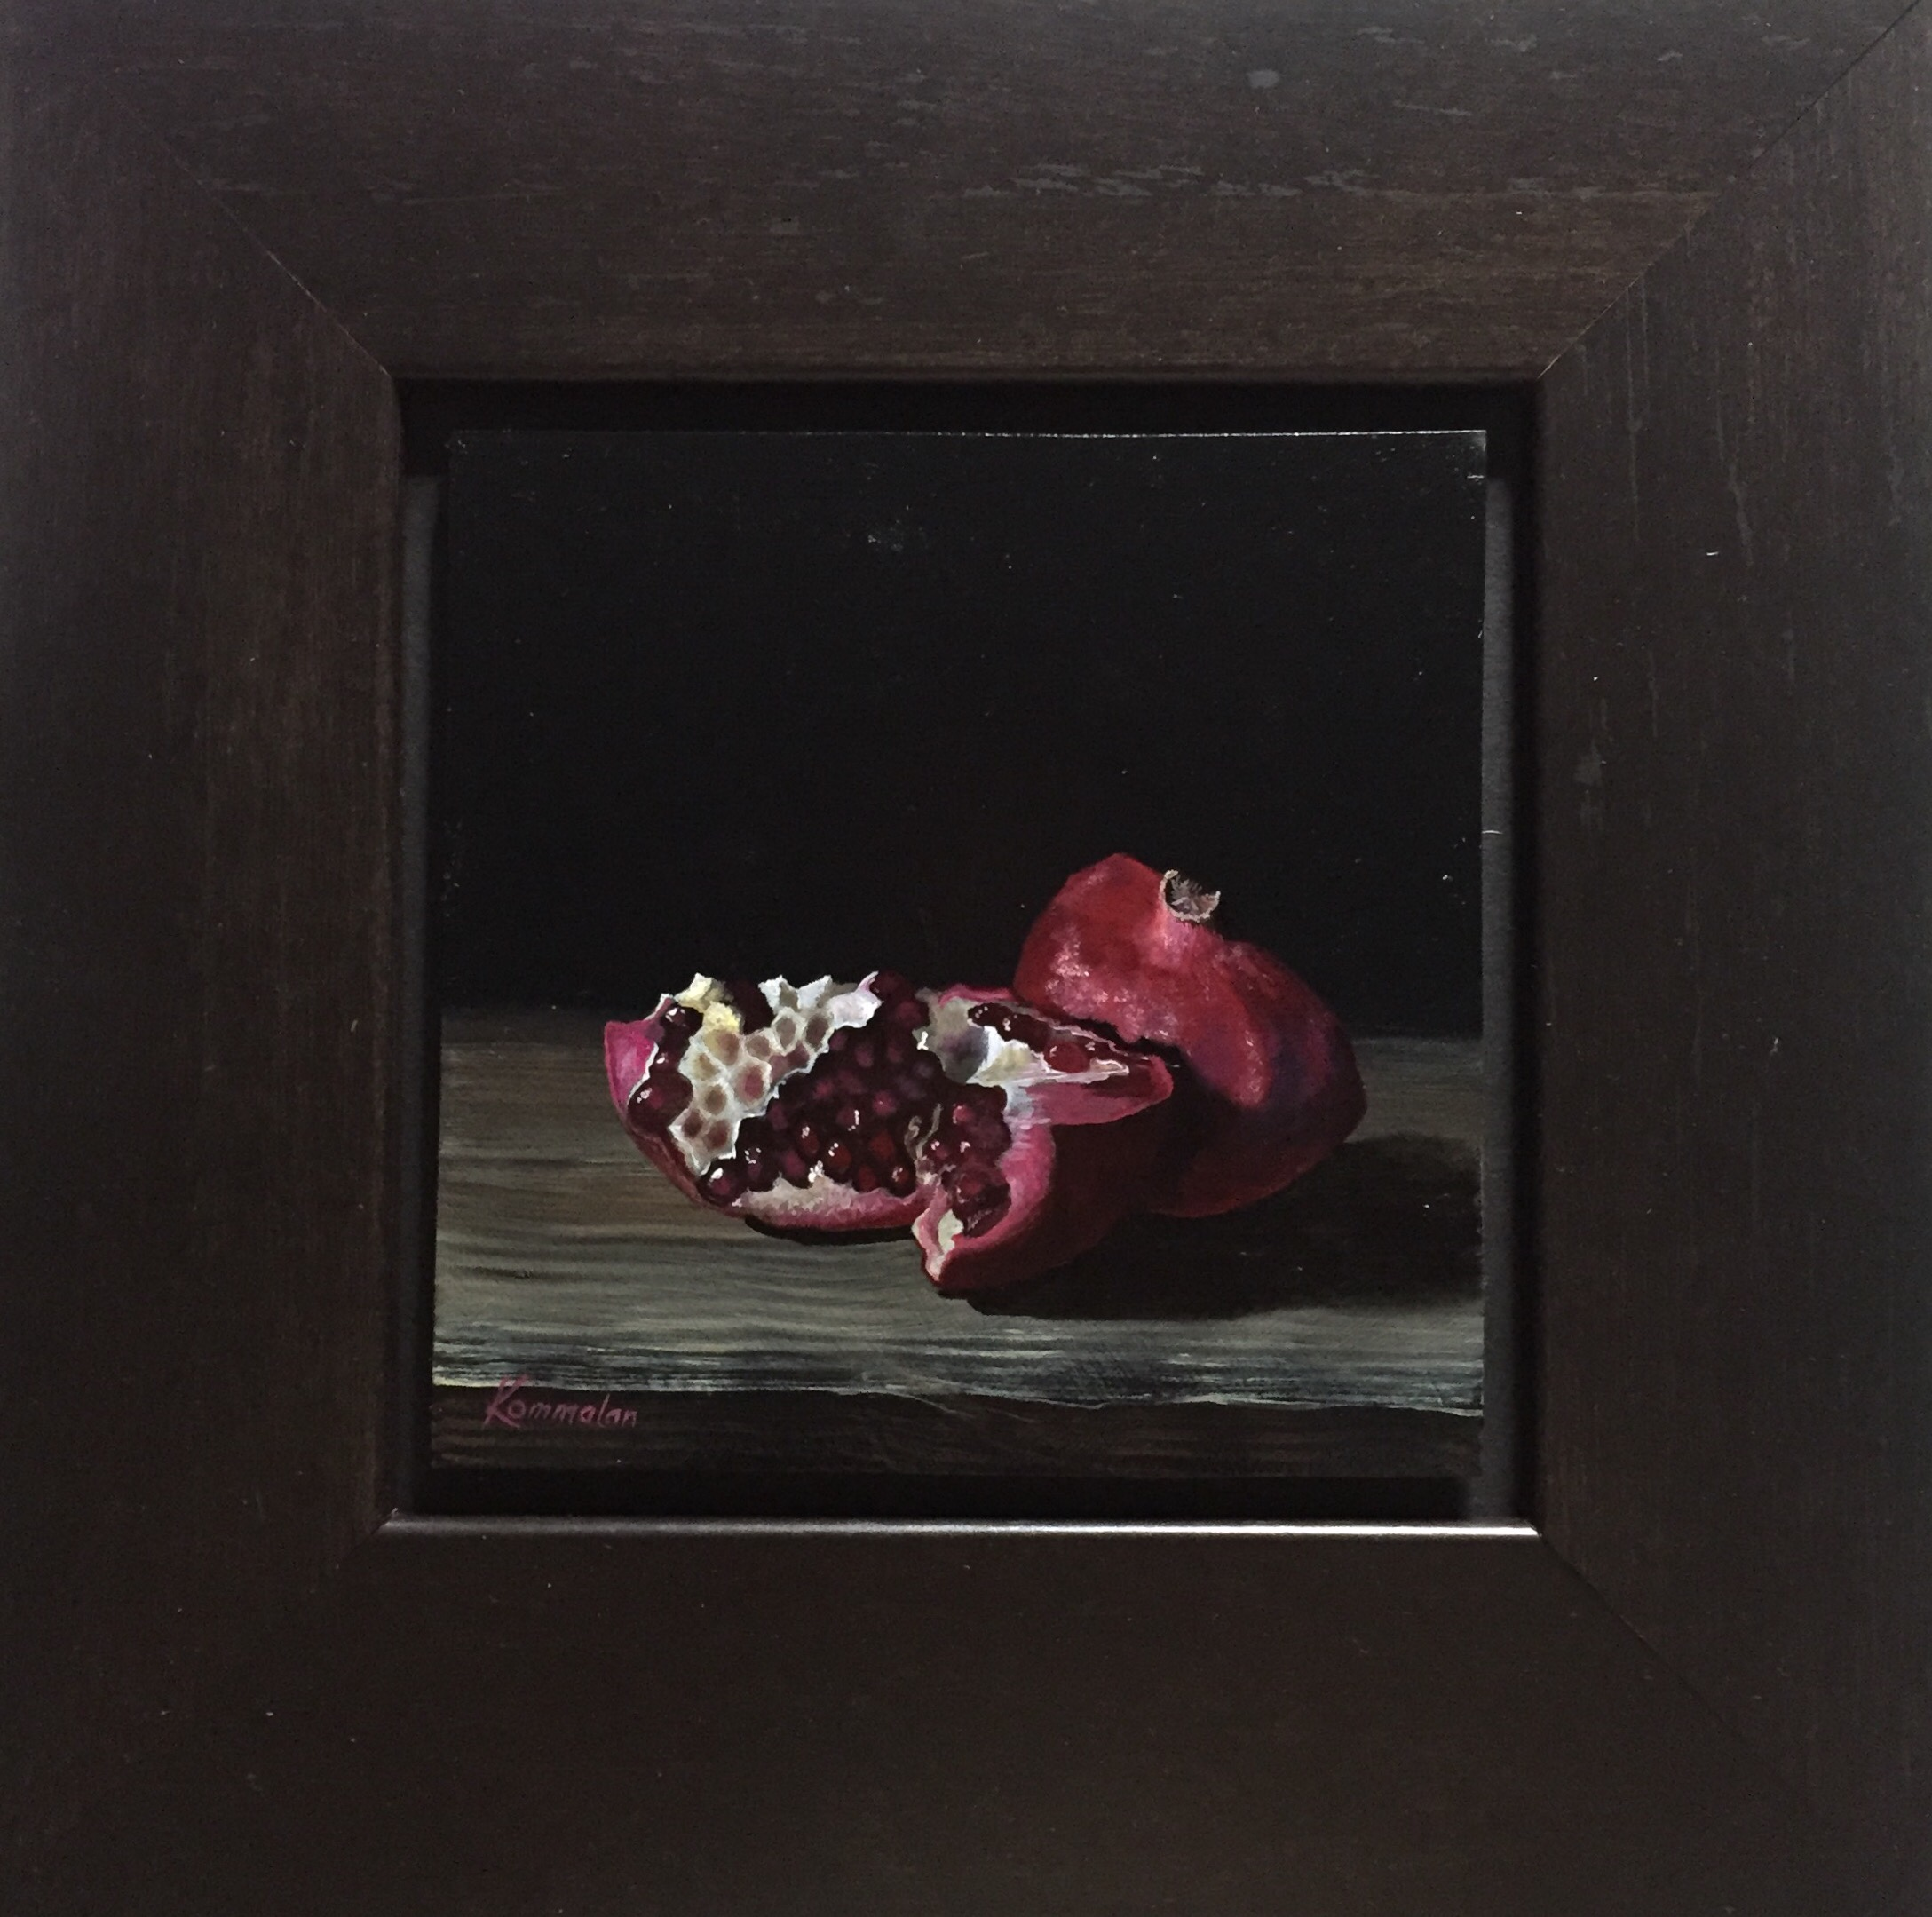 Pomegranate with Seeds III